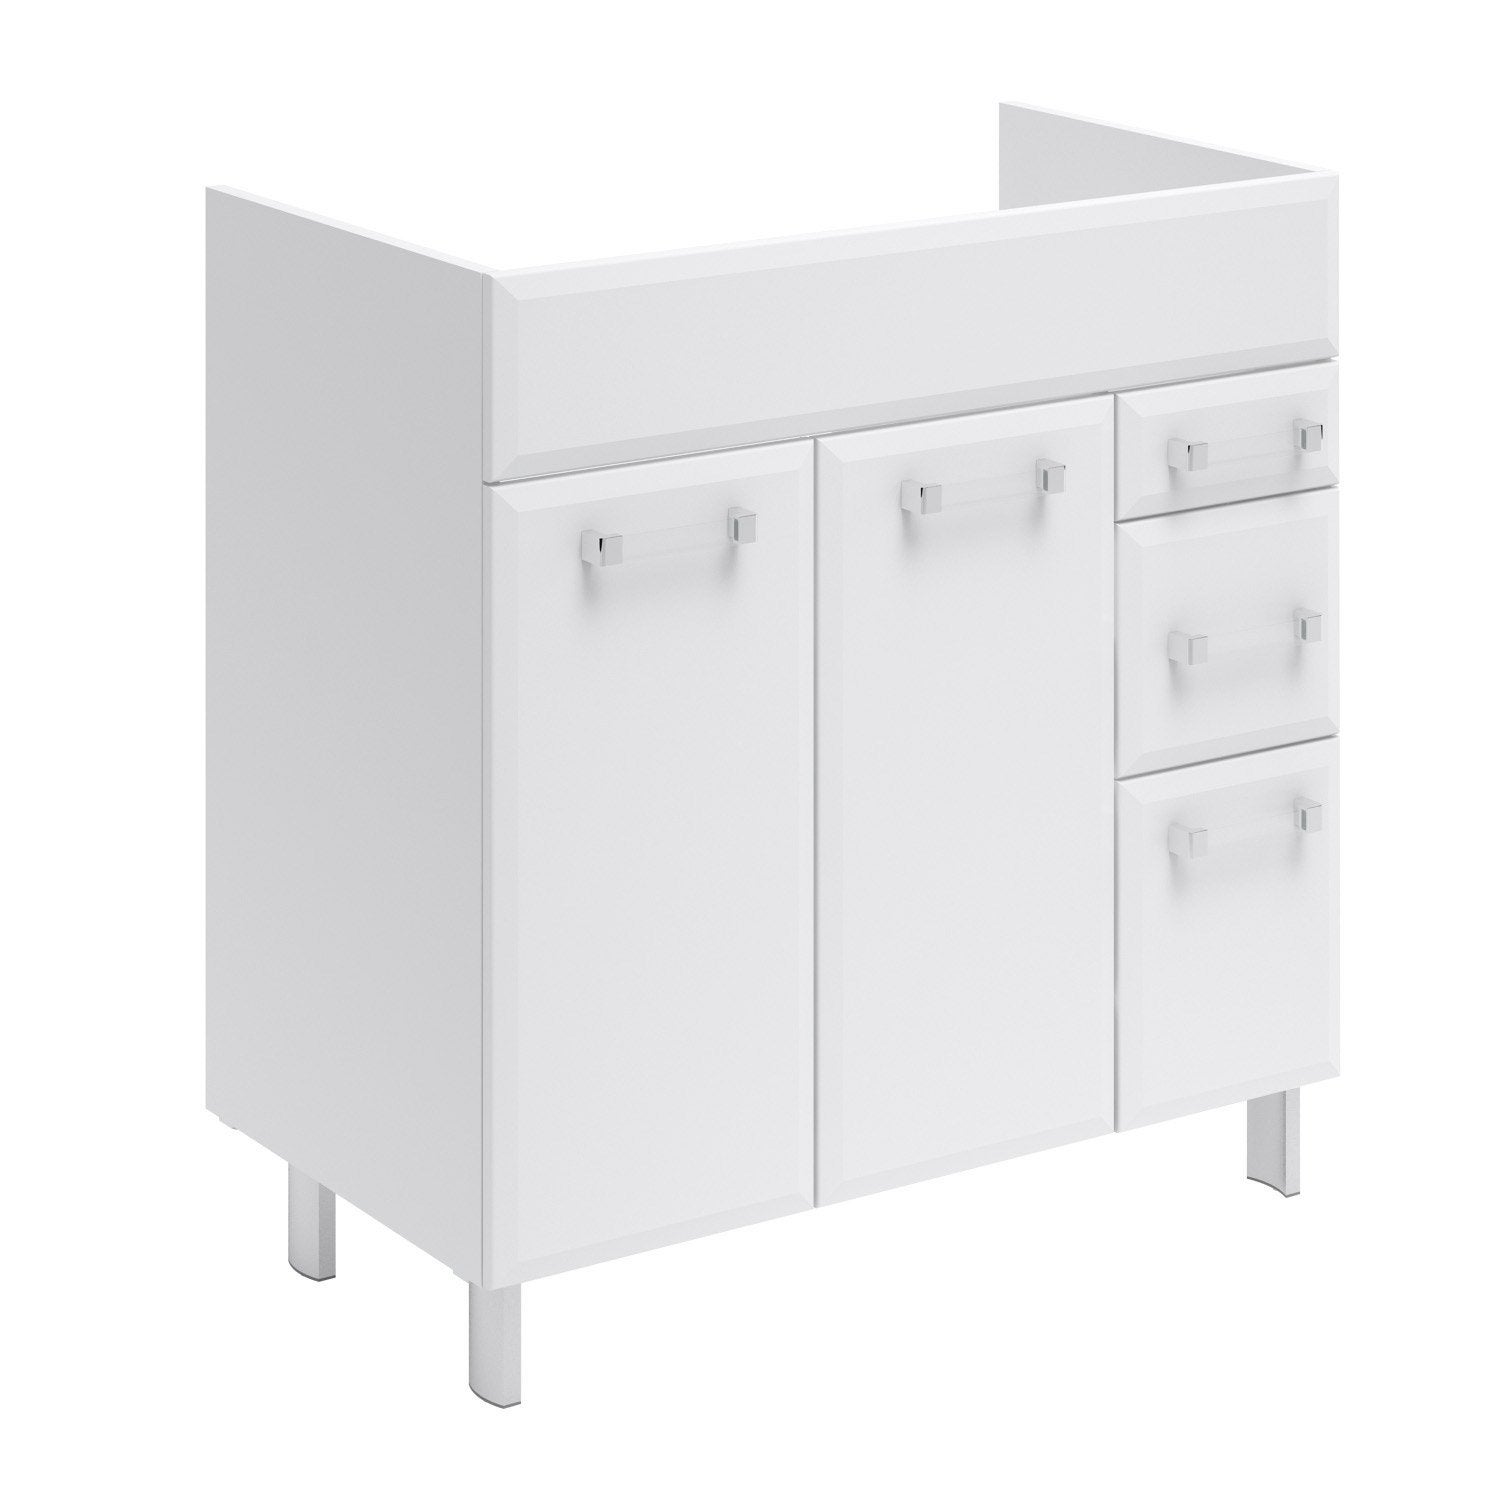 Meuble sous vasque x x cm blanc opale for Meubles leroy merlin